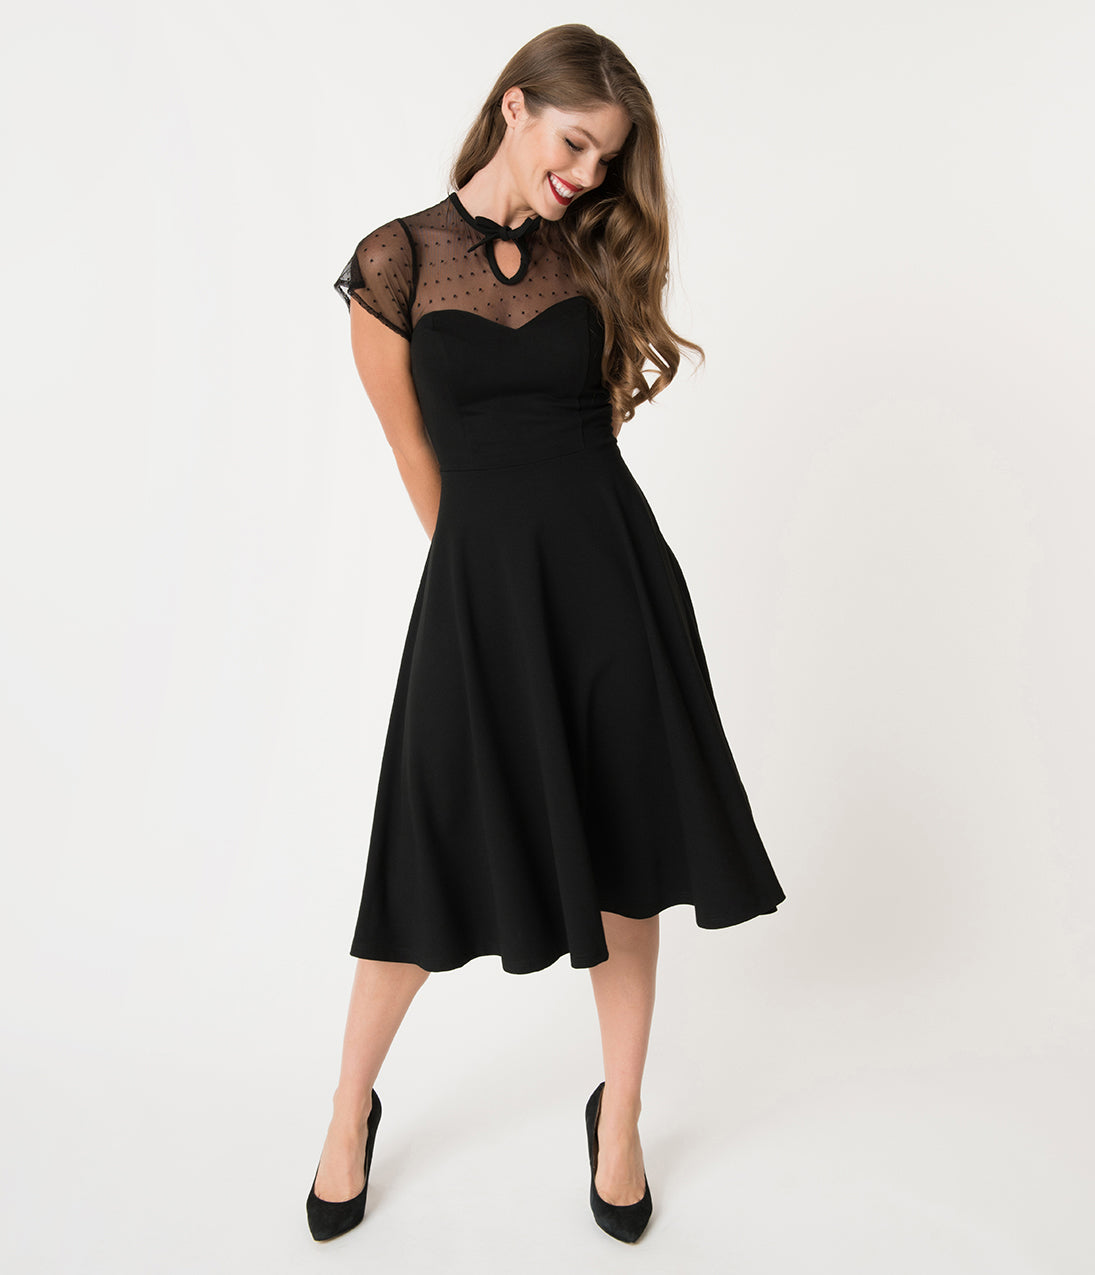 Dress Like the Marvelous Mrs. Maisel Unique Vintage 1940S Style Black Swiss Dotted Mesh Heather Midi Dress $98.00 AT vintagedancer.com